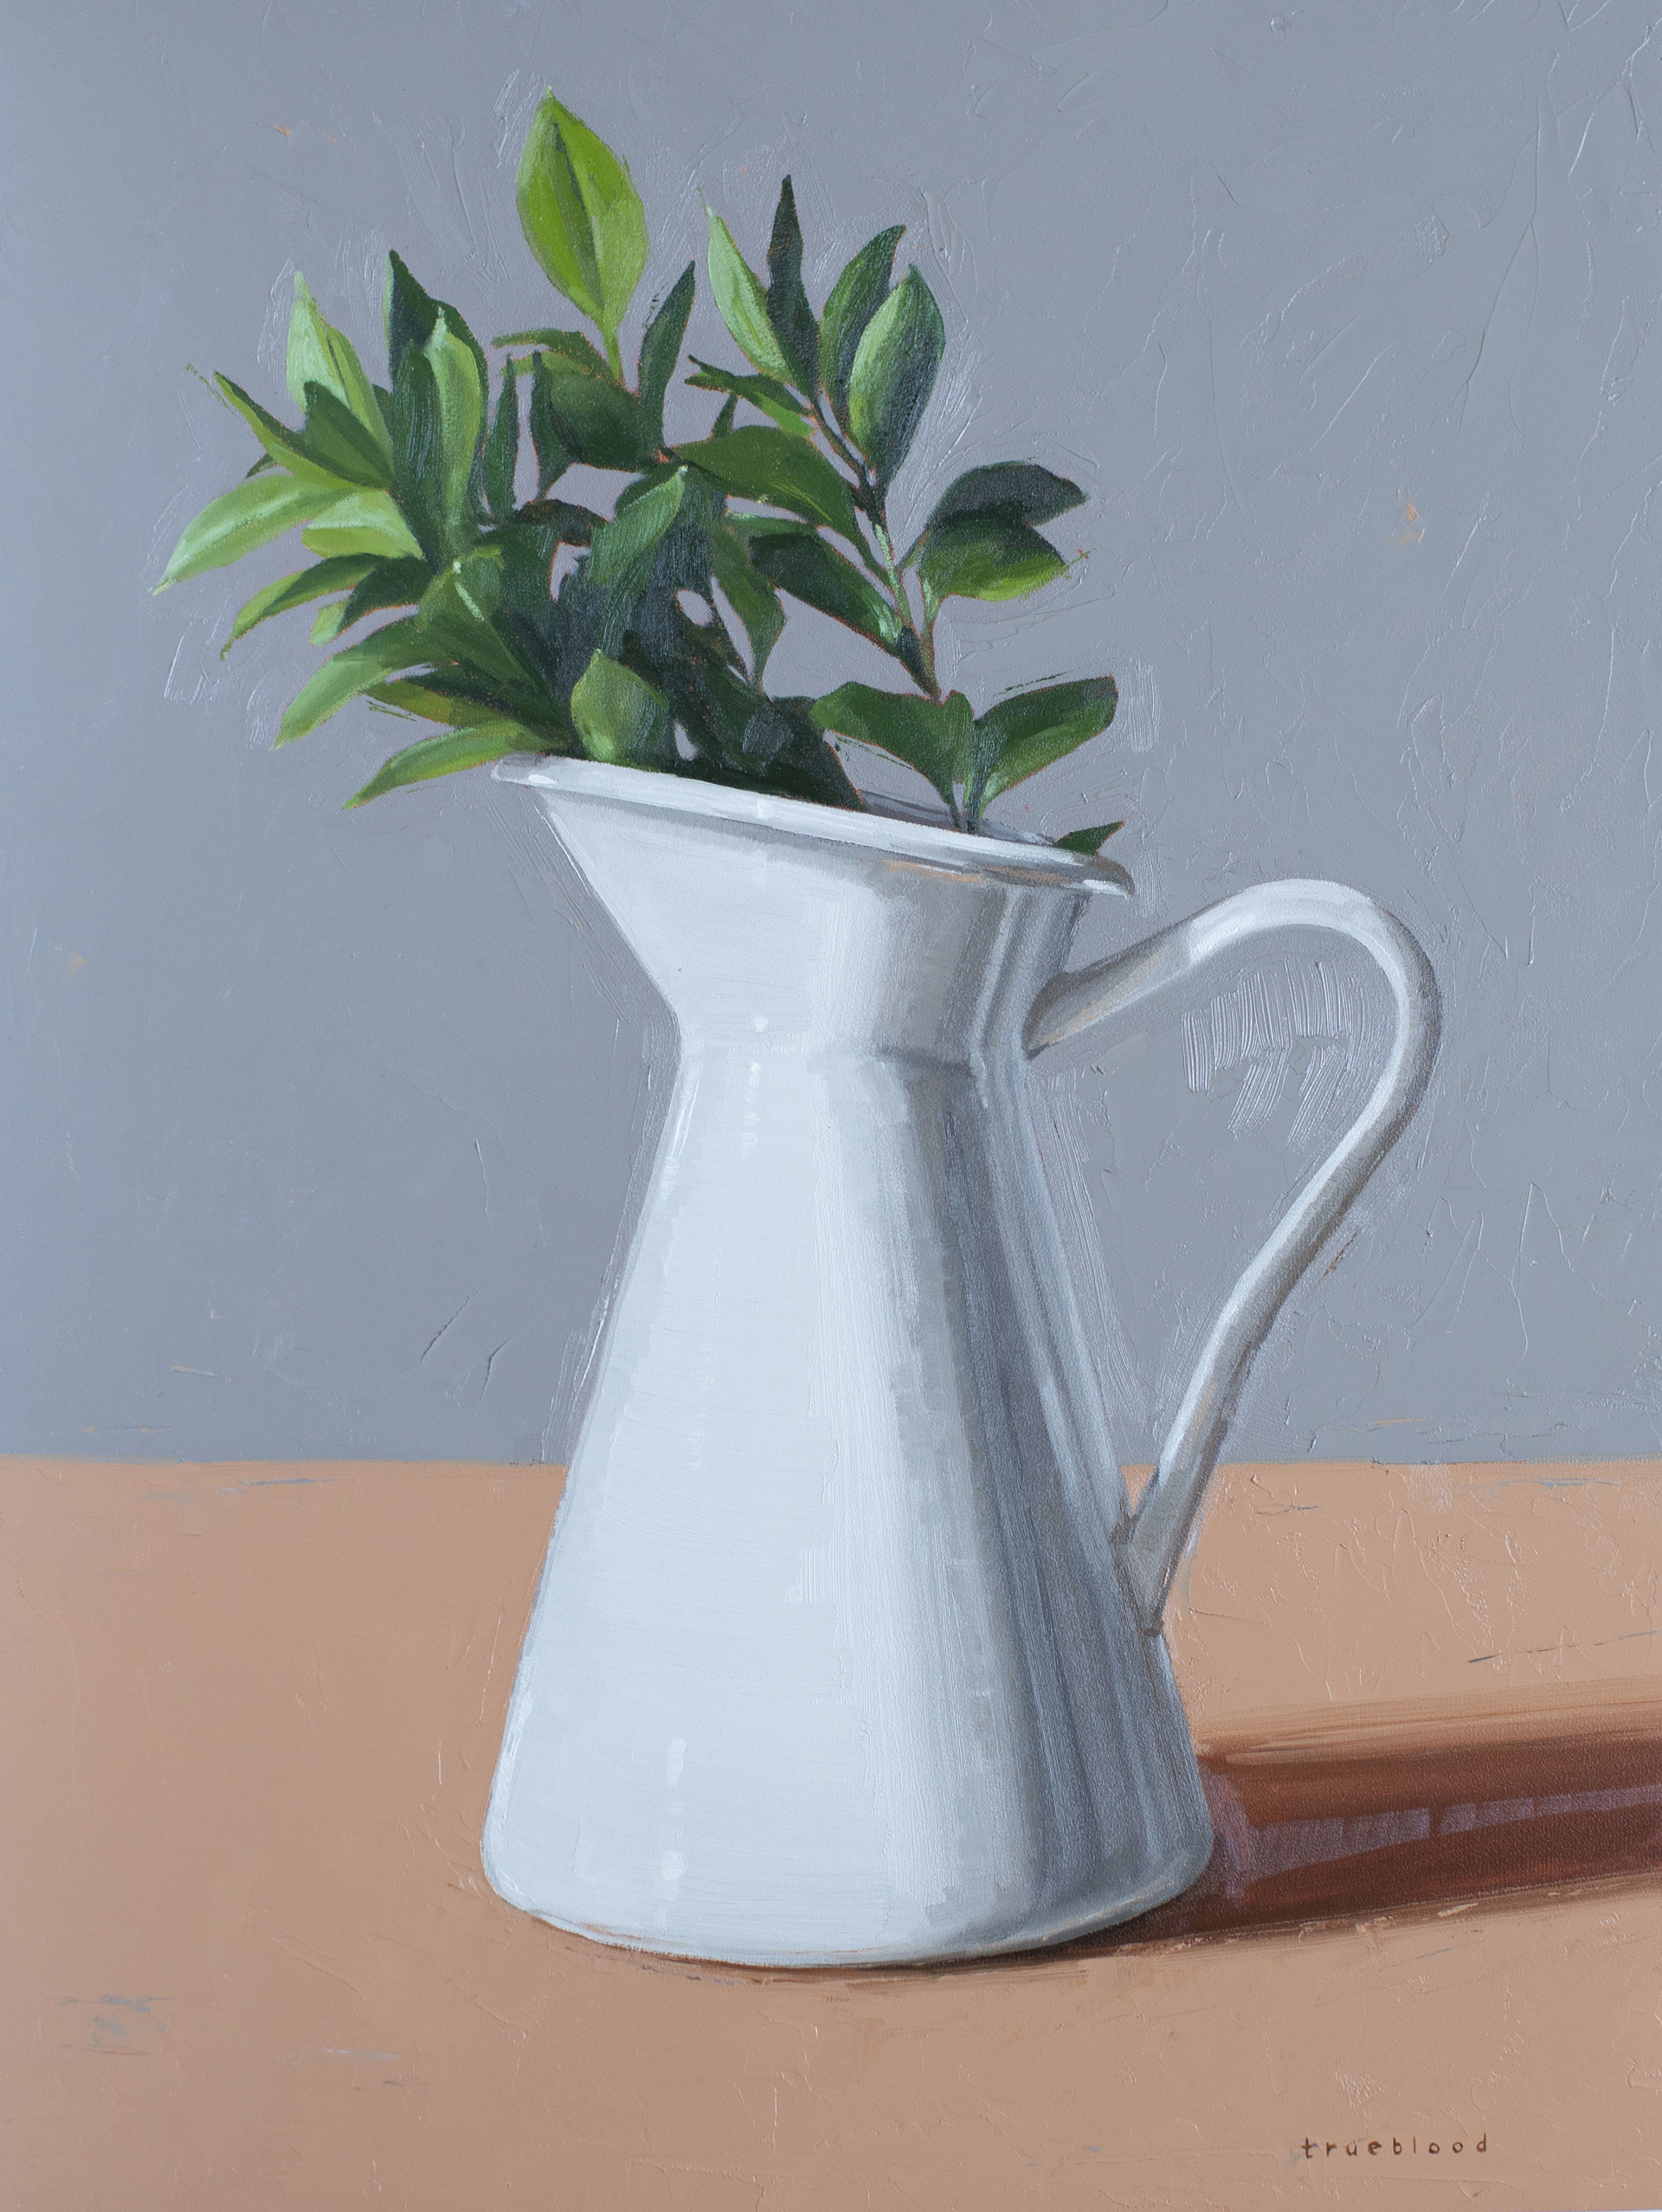 Greenery in Pitcher by Megan Trueblood